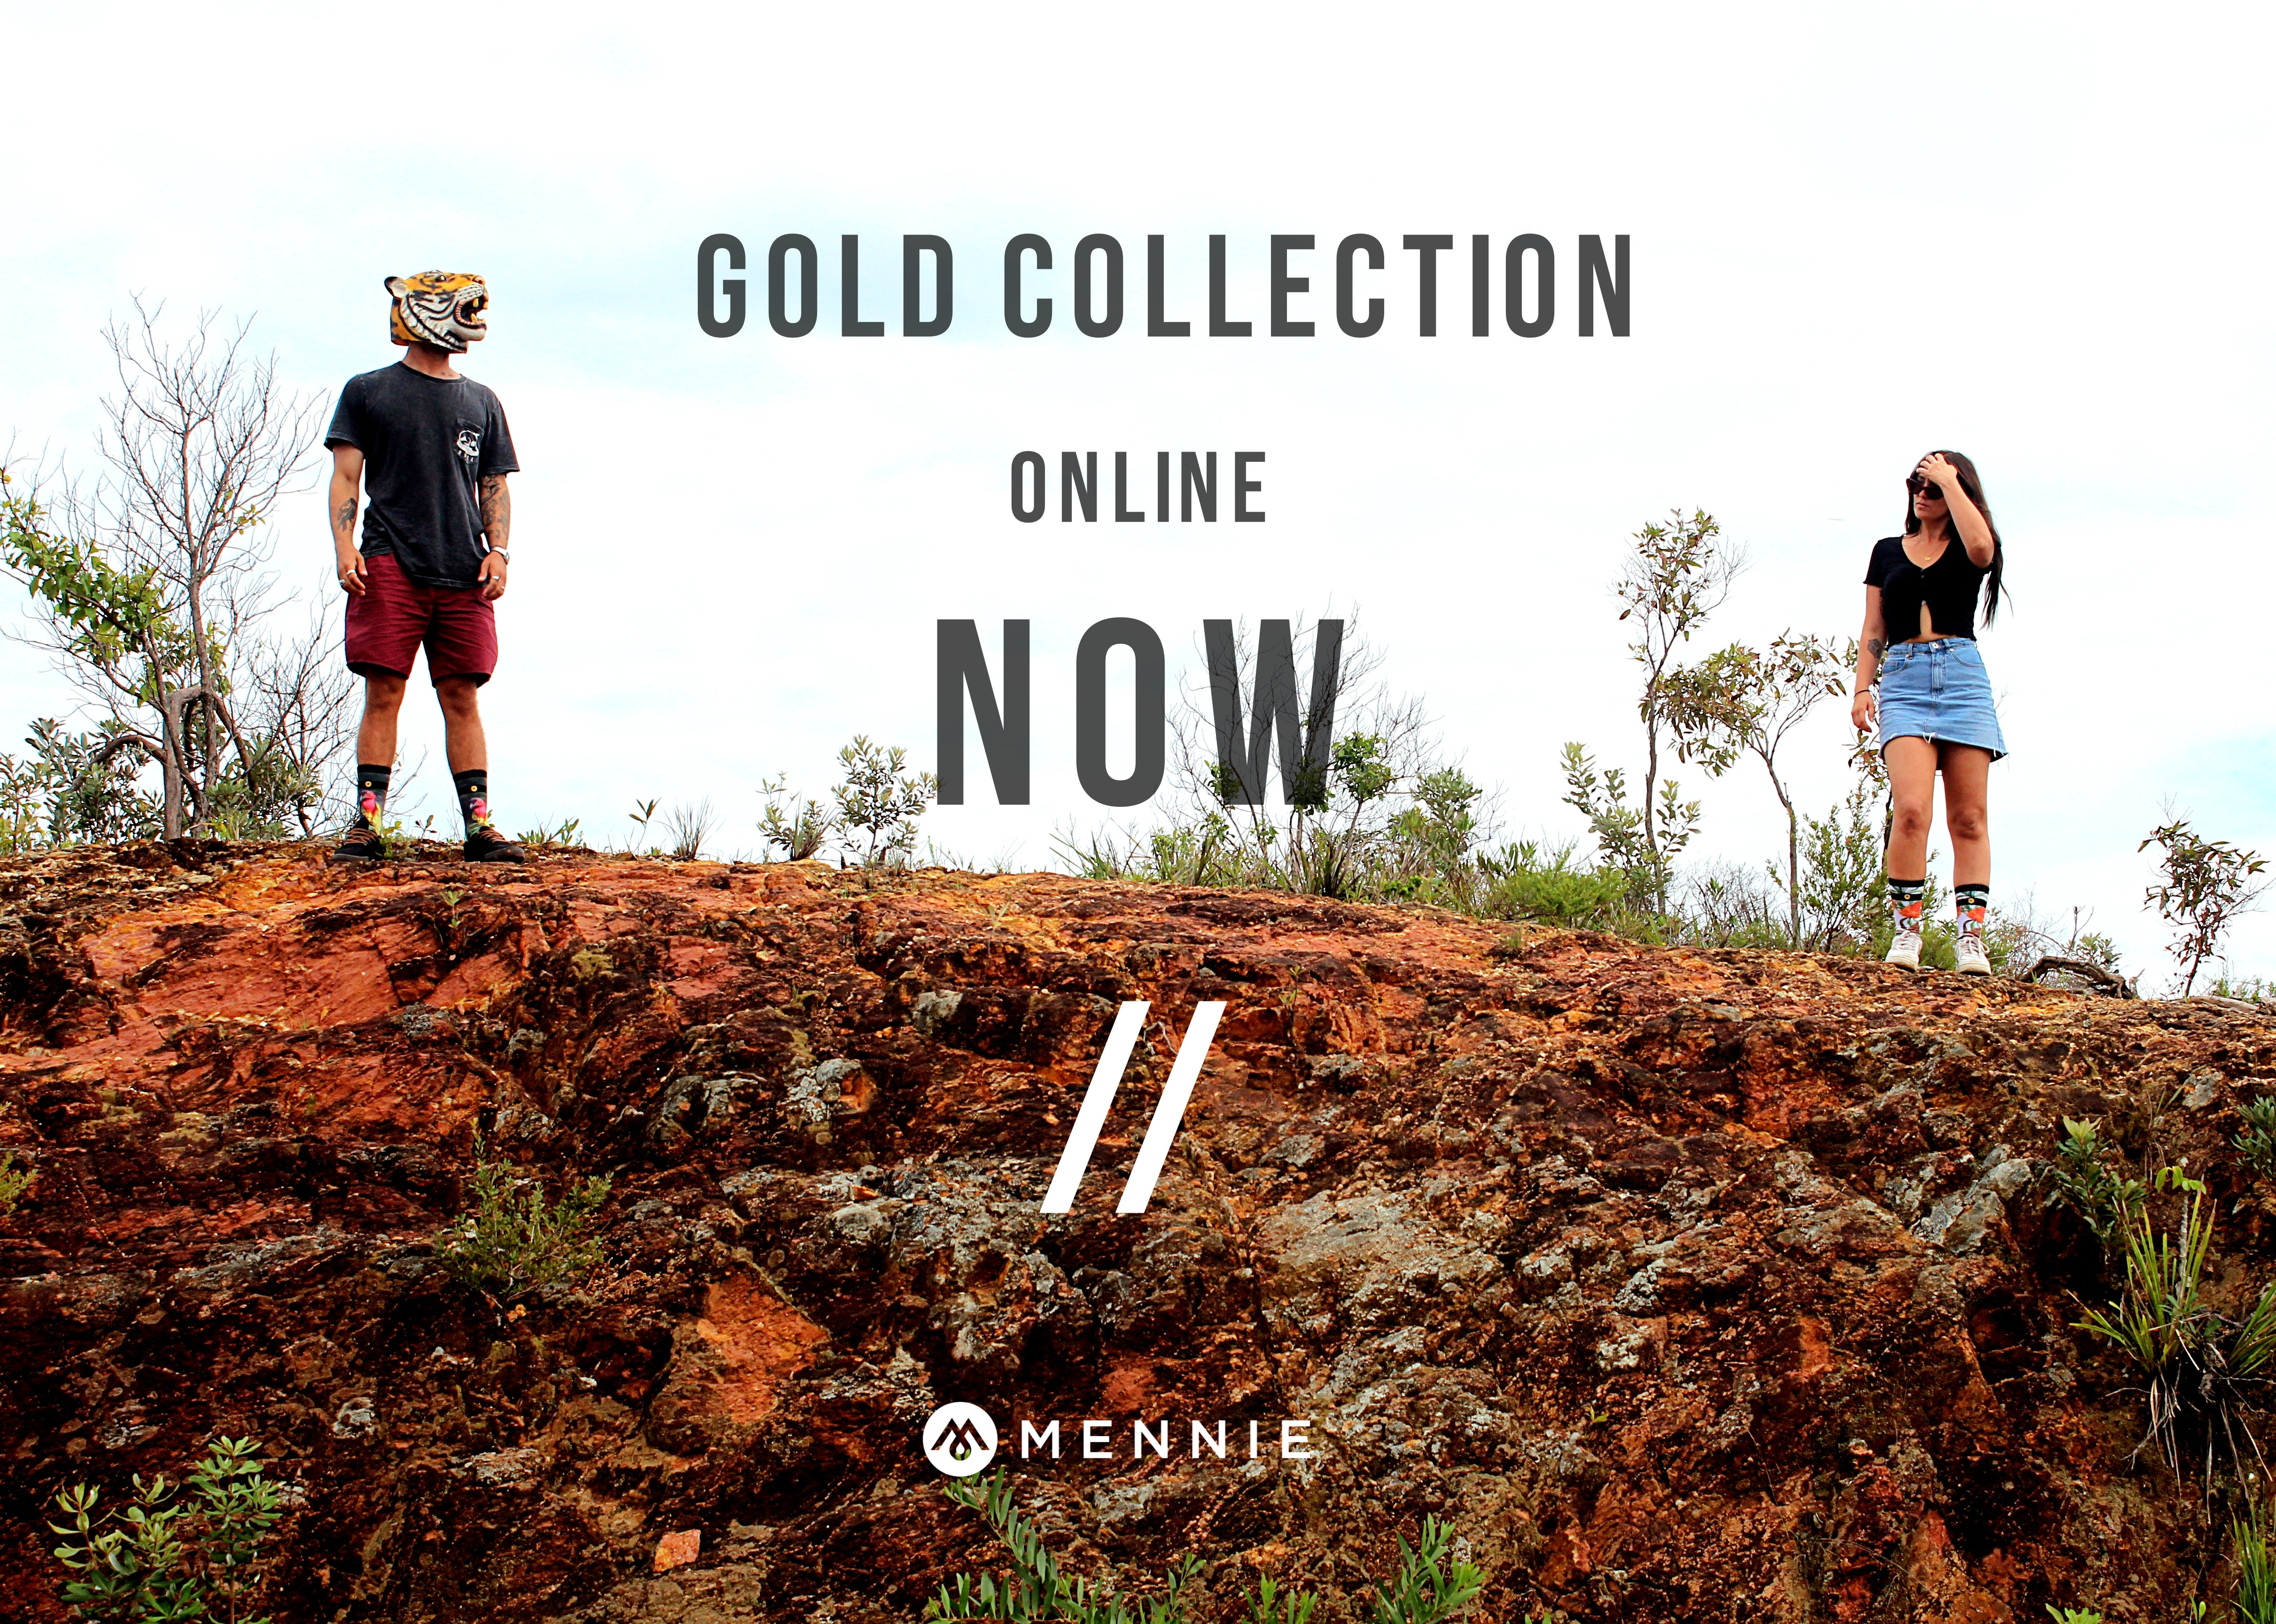 Mennie brand socks gold collection best socks online now fashion photography